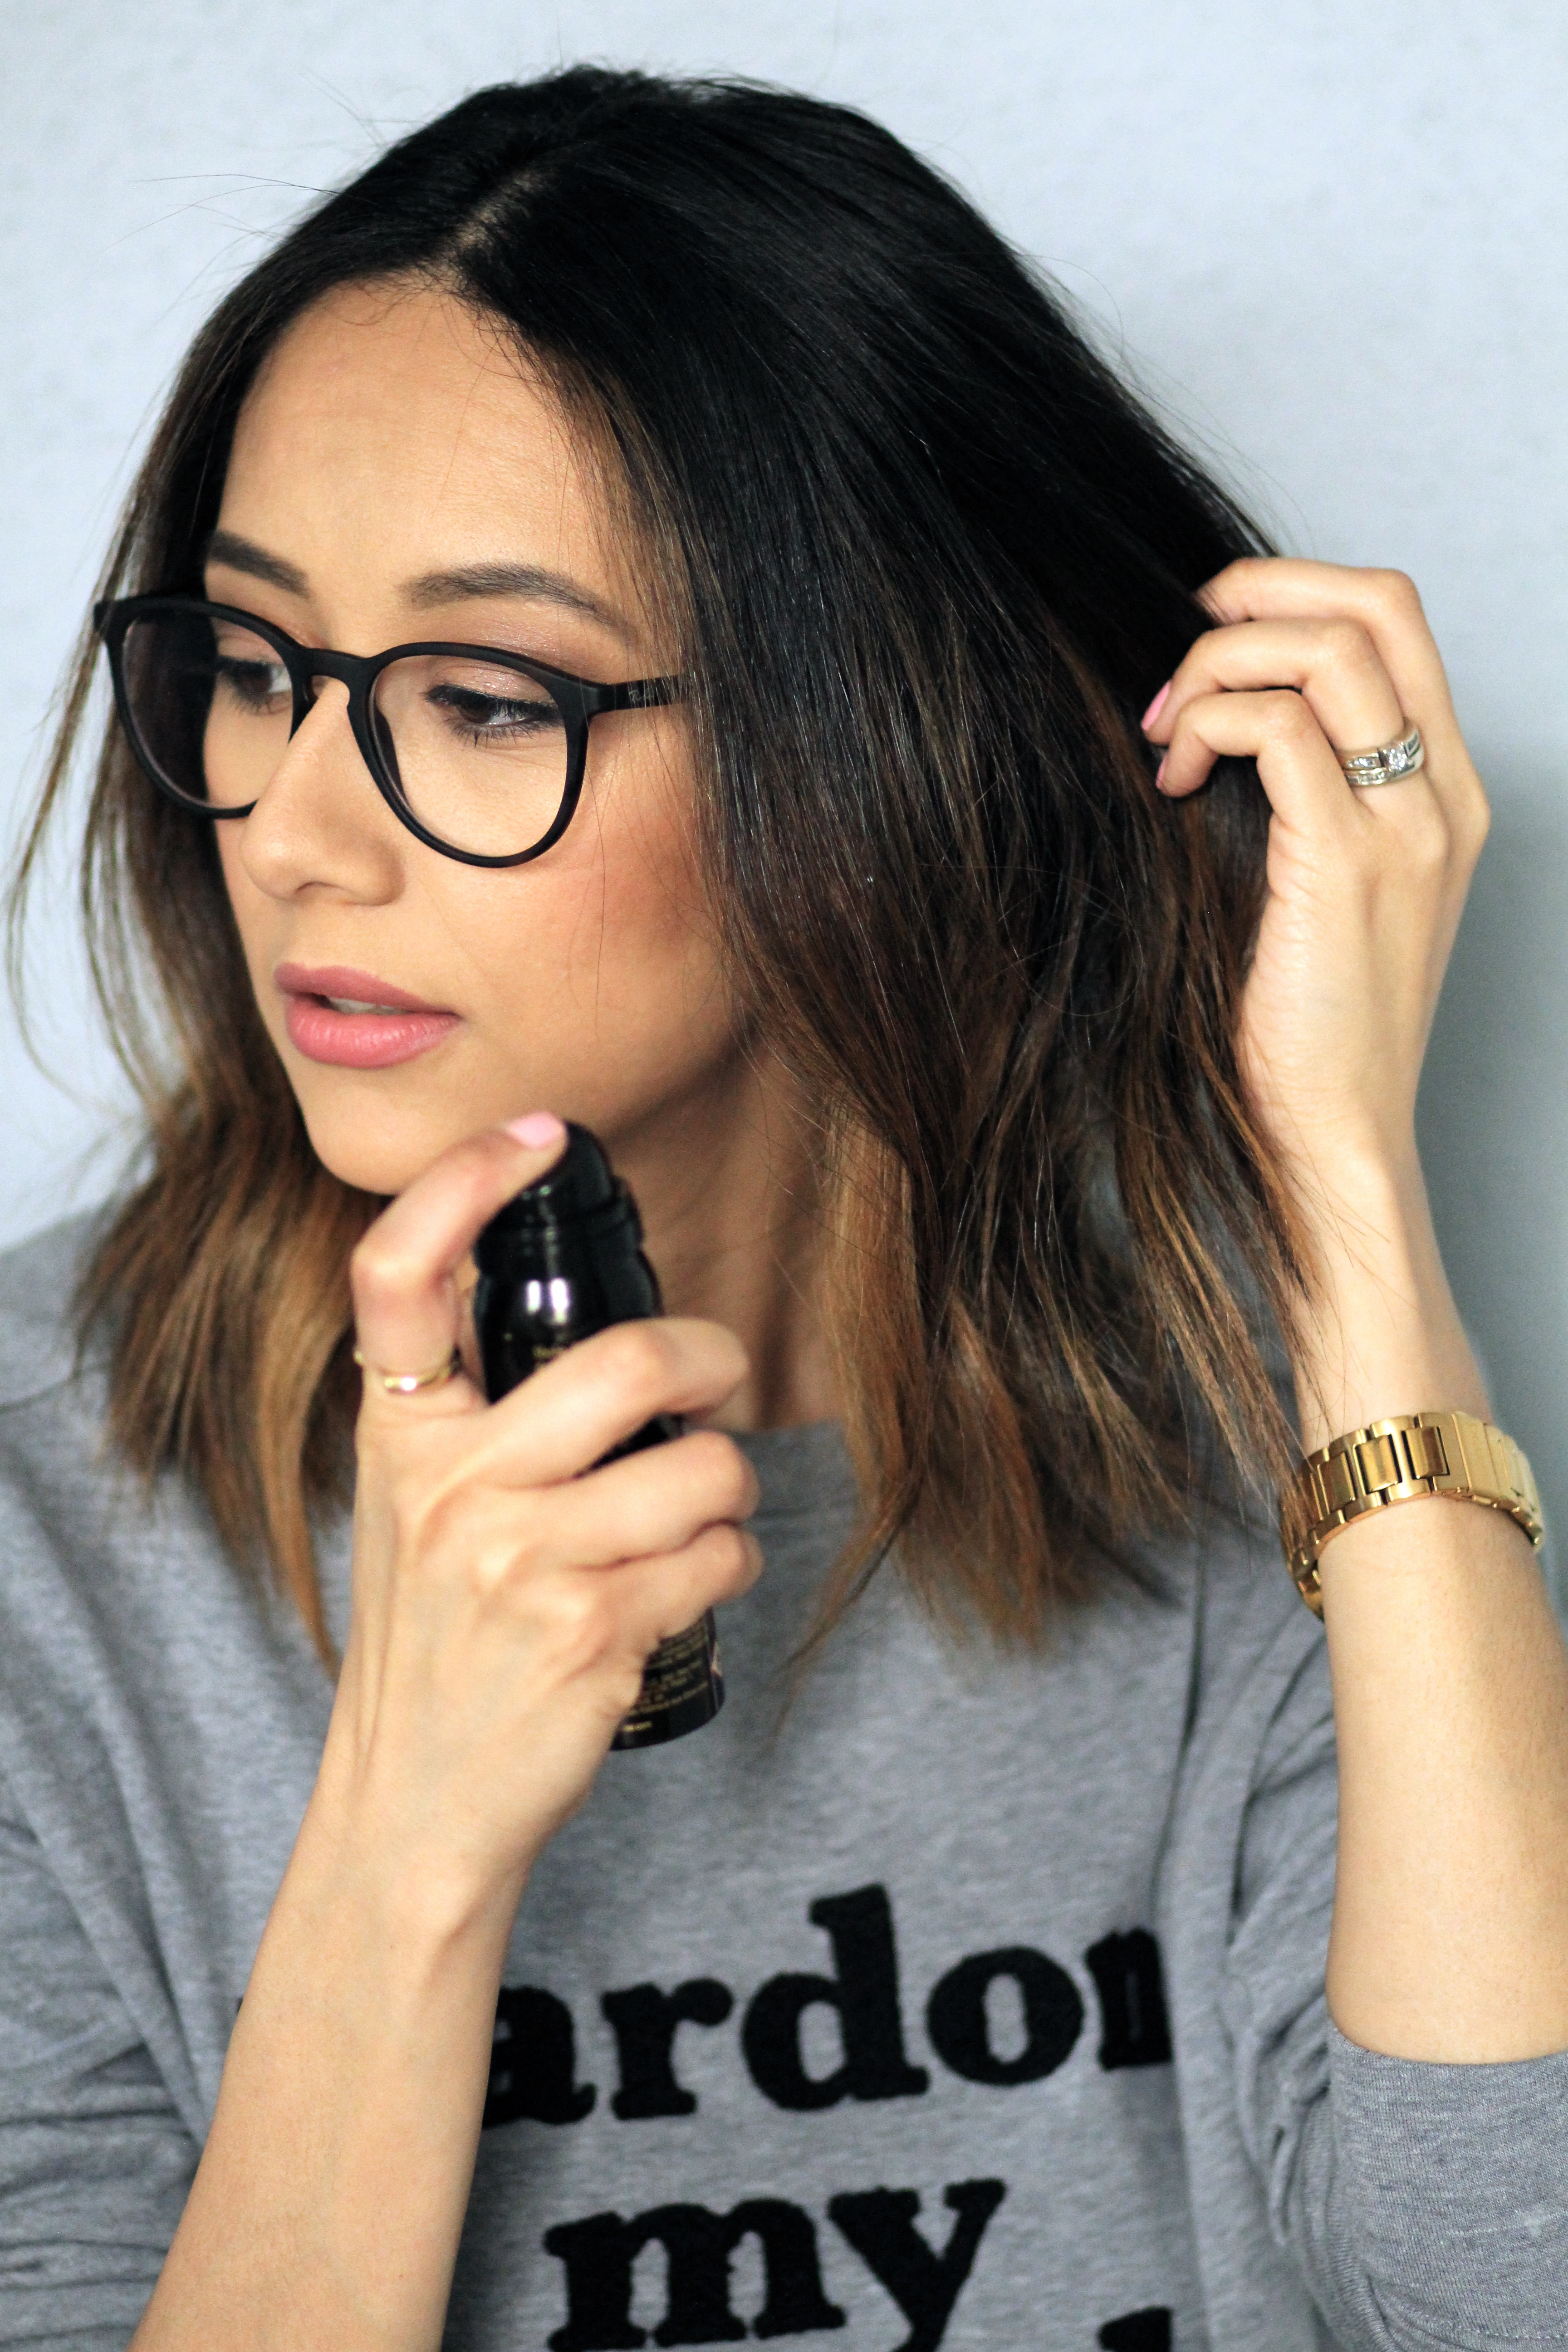 Beauty blogger Lilly Beltran of Daily Craving shares tips on how to keep color treated hair healthy